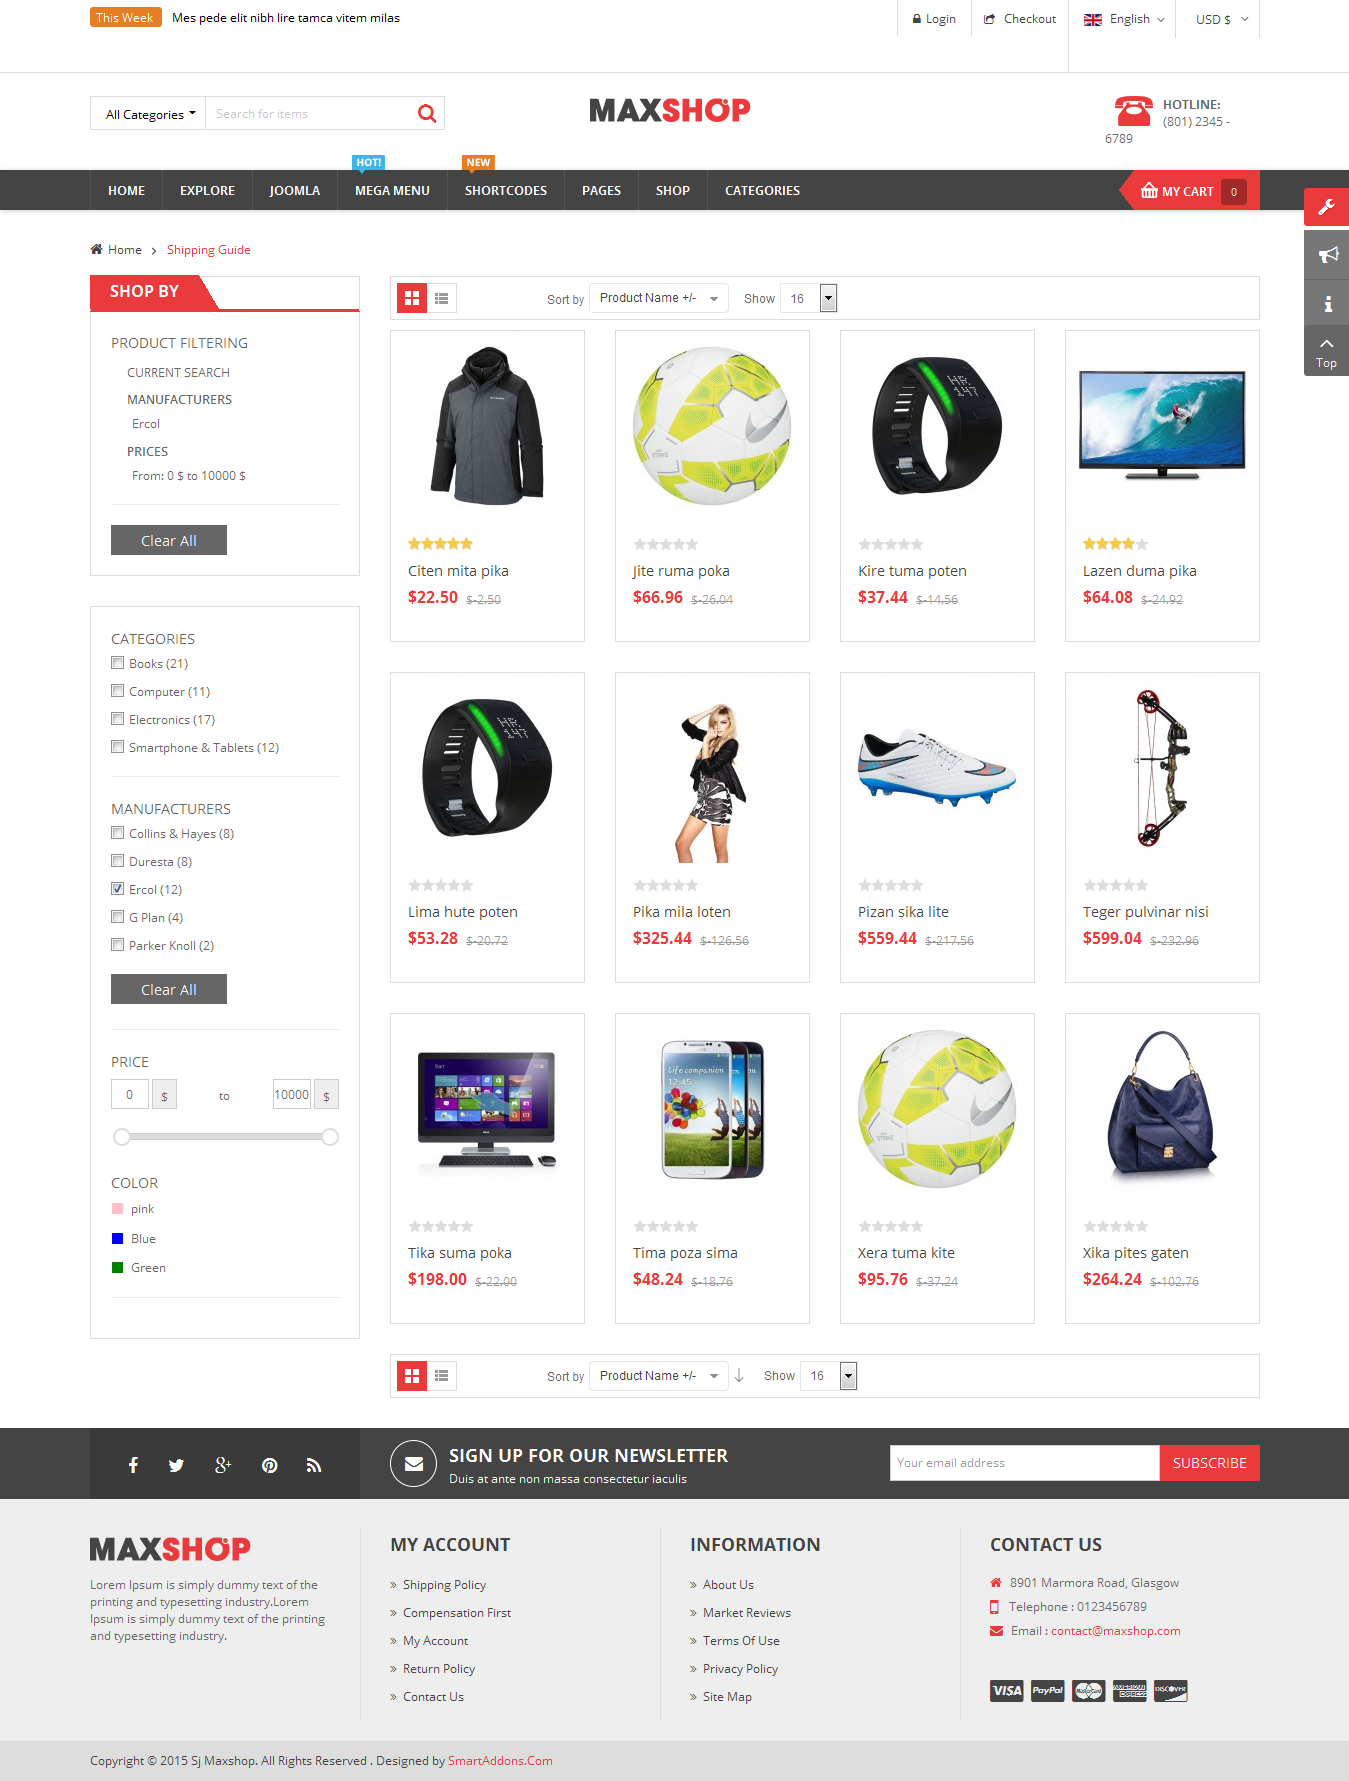 SJ Maxshop - Responsive Joomla Multipurpose eCommerce Template - 09_category-page.png